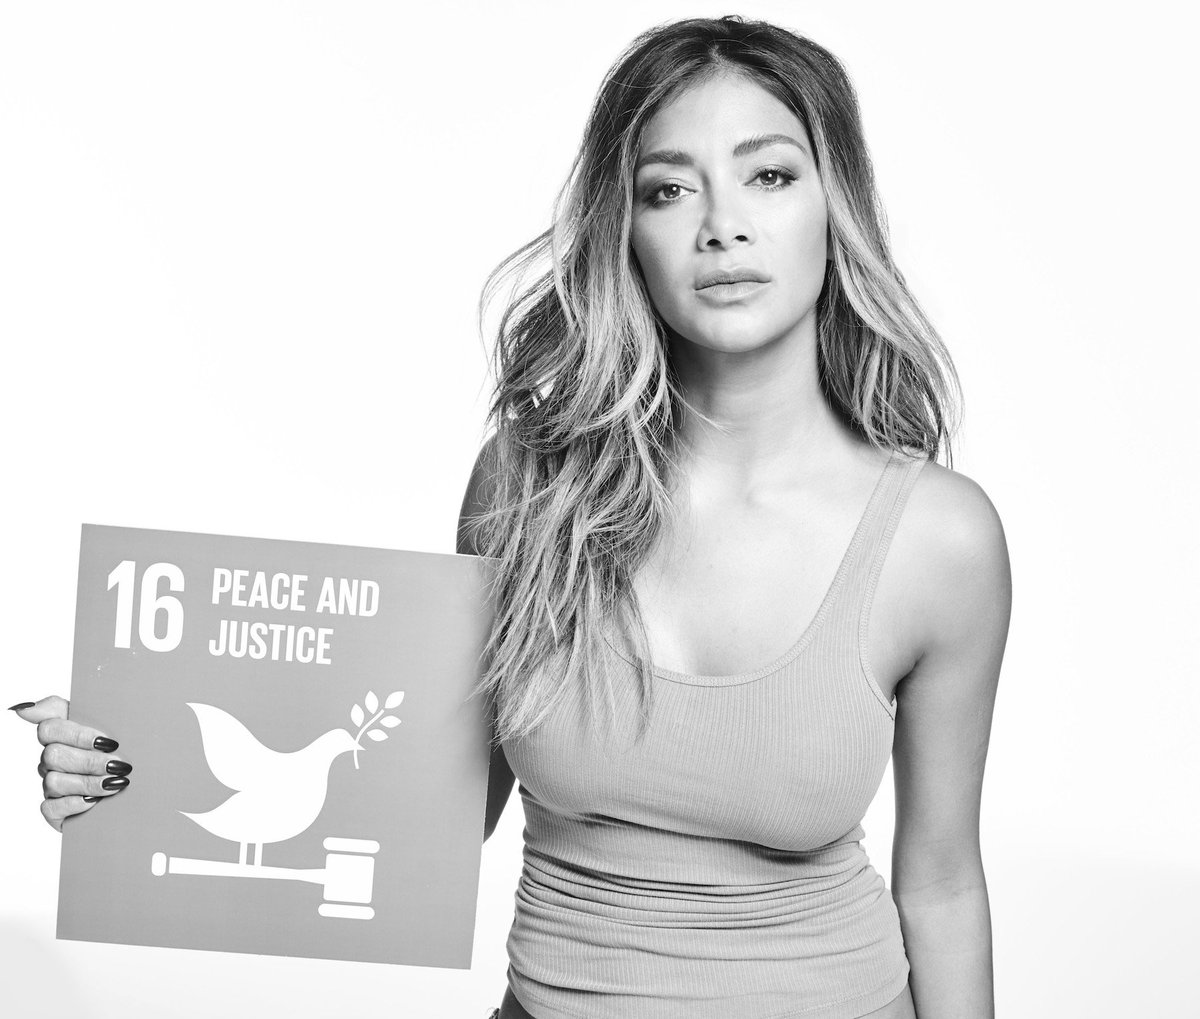 RT @TheGlobalGoals: The beautiful @NicoleScherzy standing for a beautiful goal. Is this the goal that YOU care most about? #GlobalGoals htt…